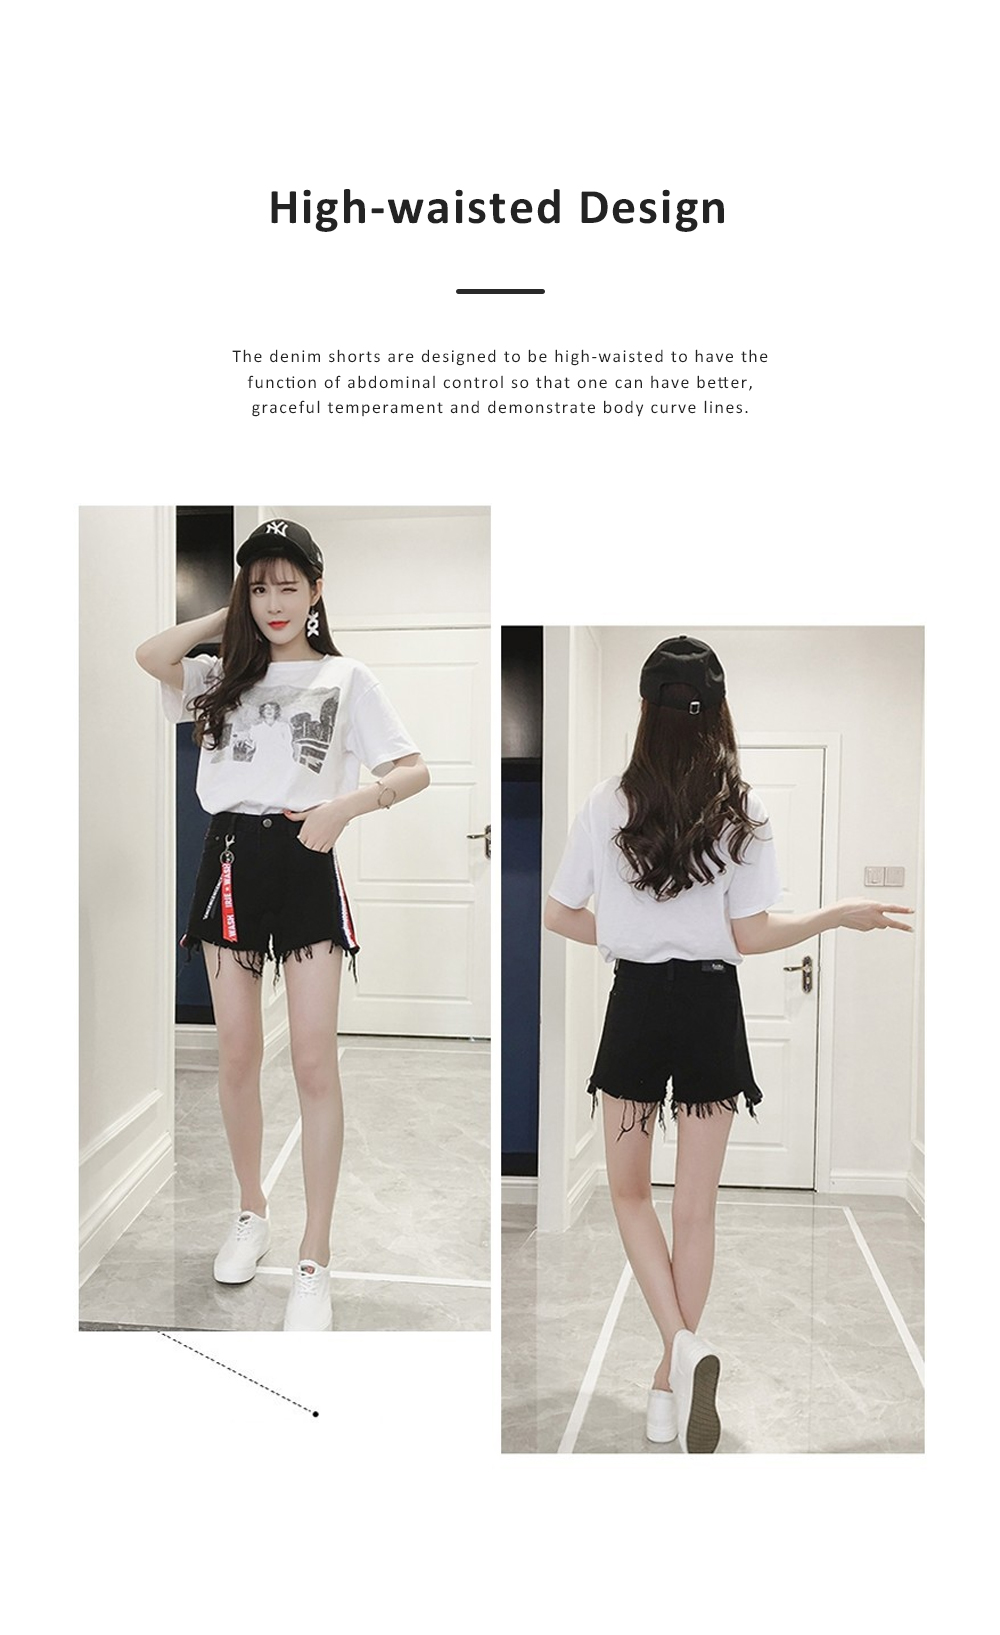 2019 High-waisted Denim Shorts Jeans Pants for Girl Students Wear Summer Loose Version Short Pants in Pure Black Color or White Color 3